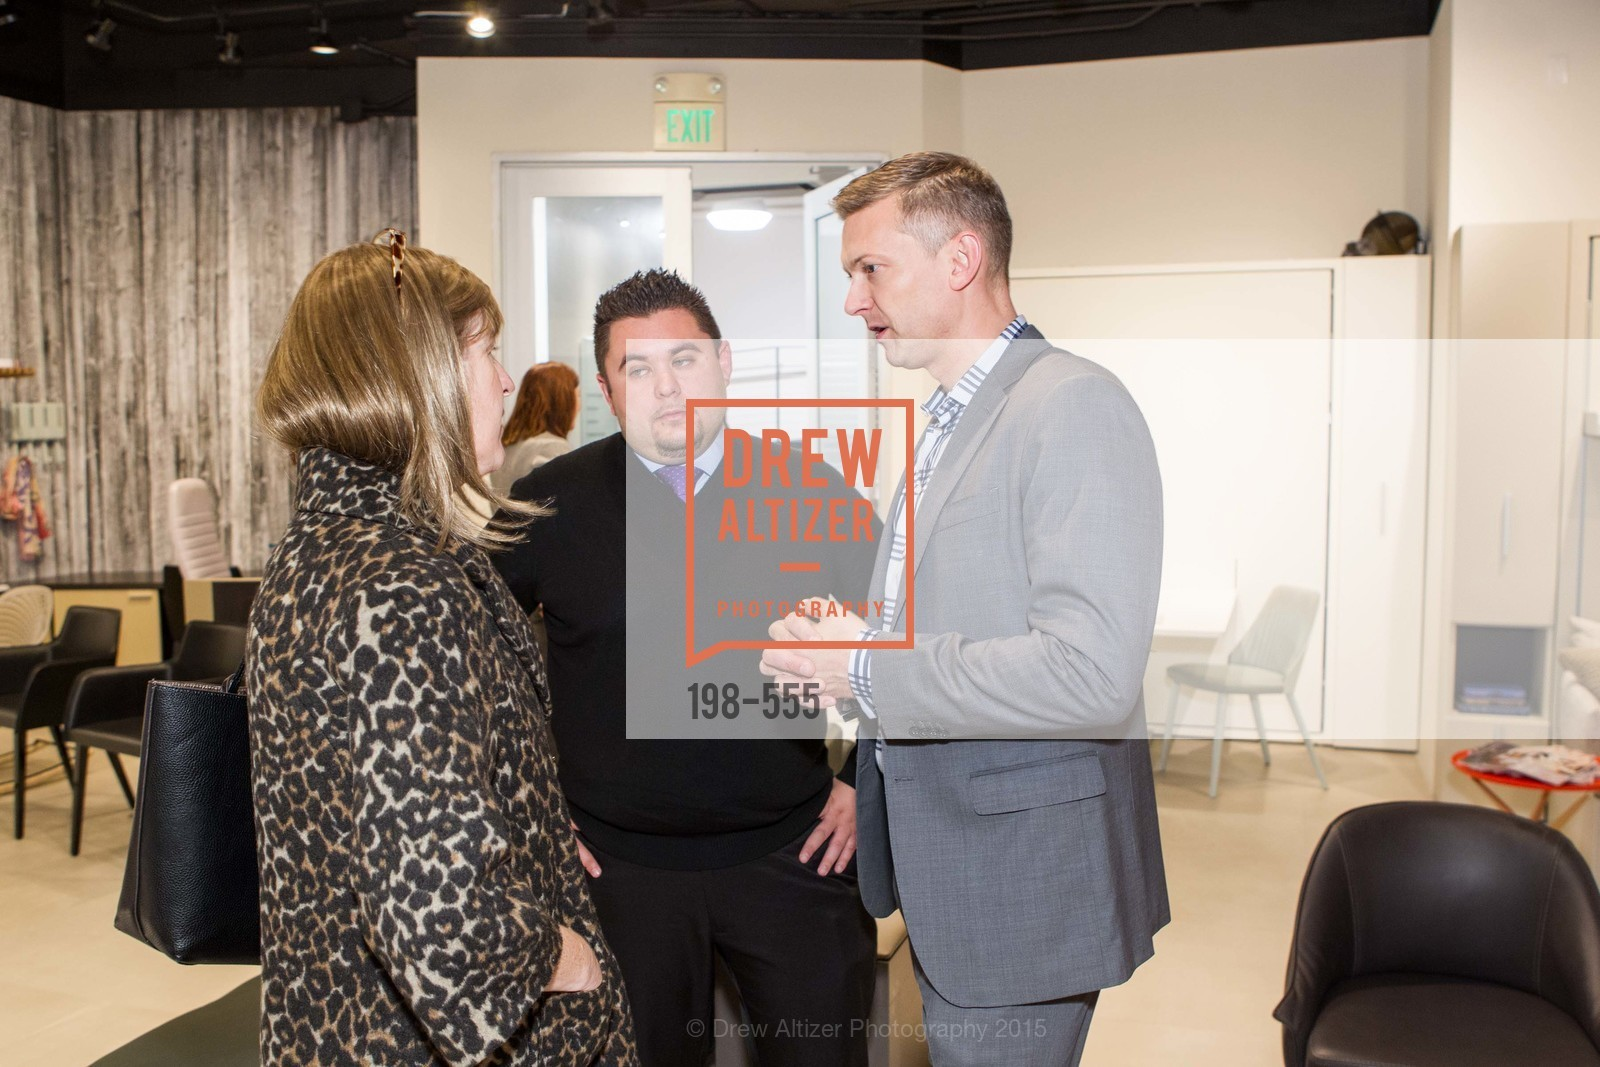 Abby Day-Merchant, Michael Minson, Noah Fierro, SFC&G Real Estate Survey Reveal, Resource Furniture, November 19th, 2015,Drew Altizer, Drew Altizer Photography, full-service agency, private events, San Francisco photographer, photographer california